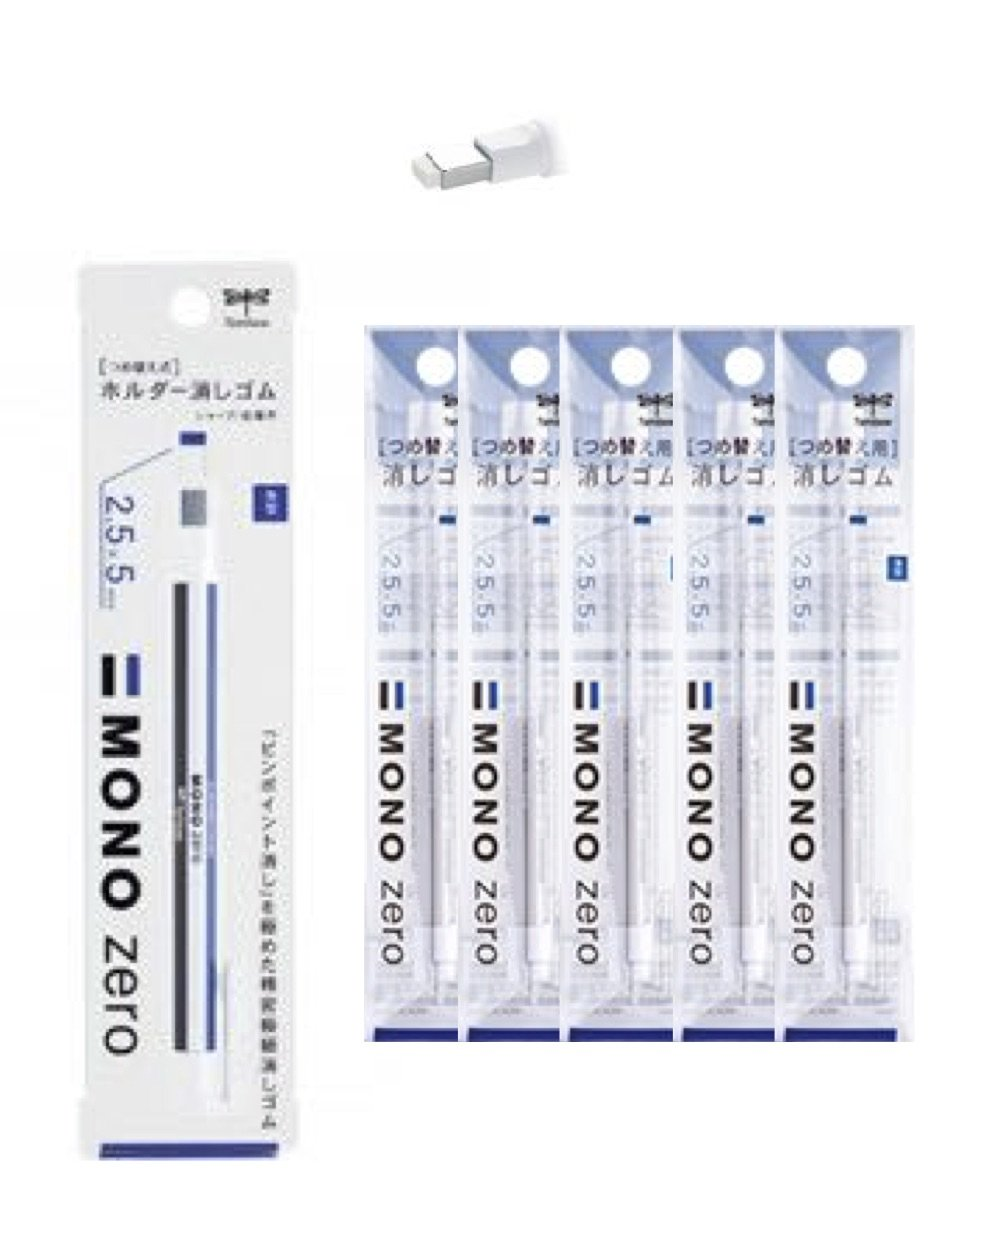 Tombow MONO Zero Eraser, 2.5mm Rectangle Tip Pen-Style x 10